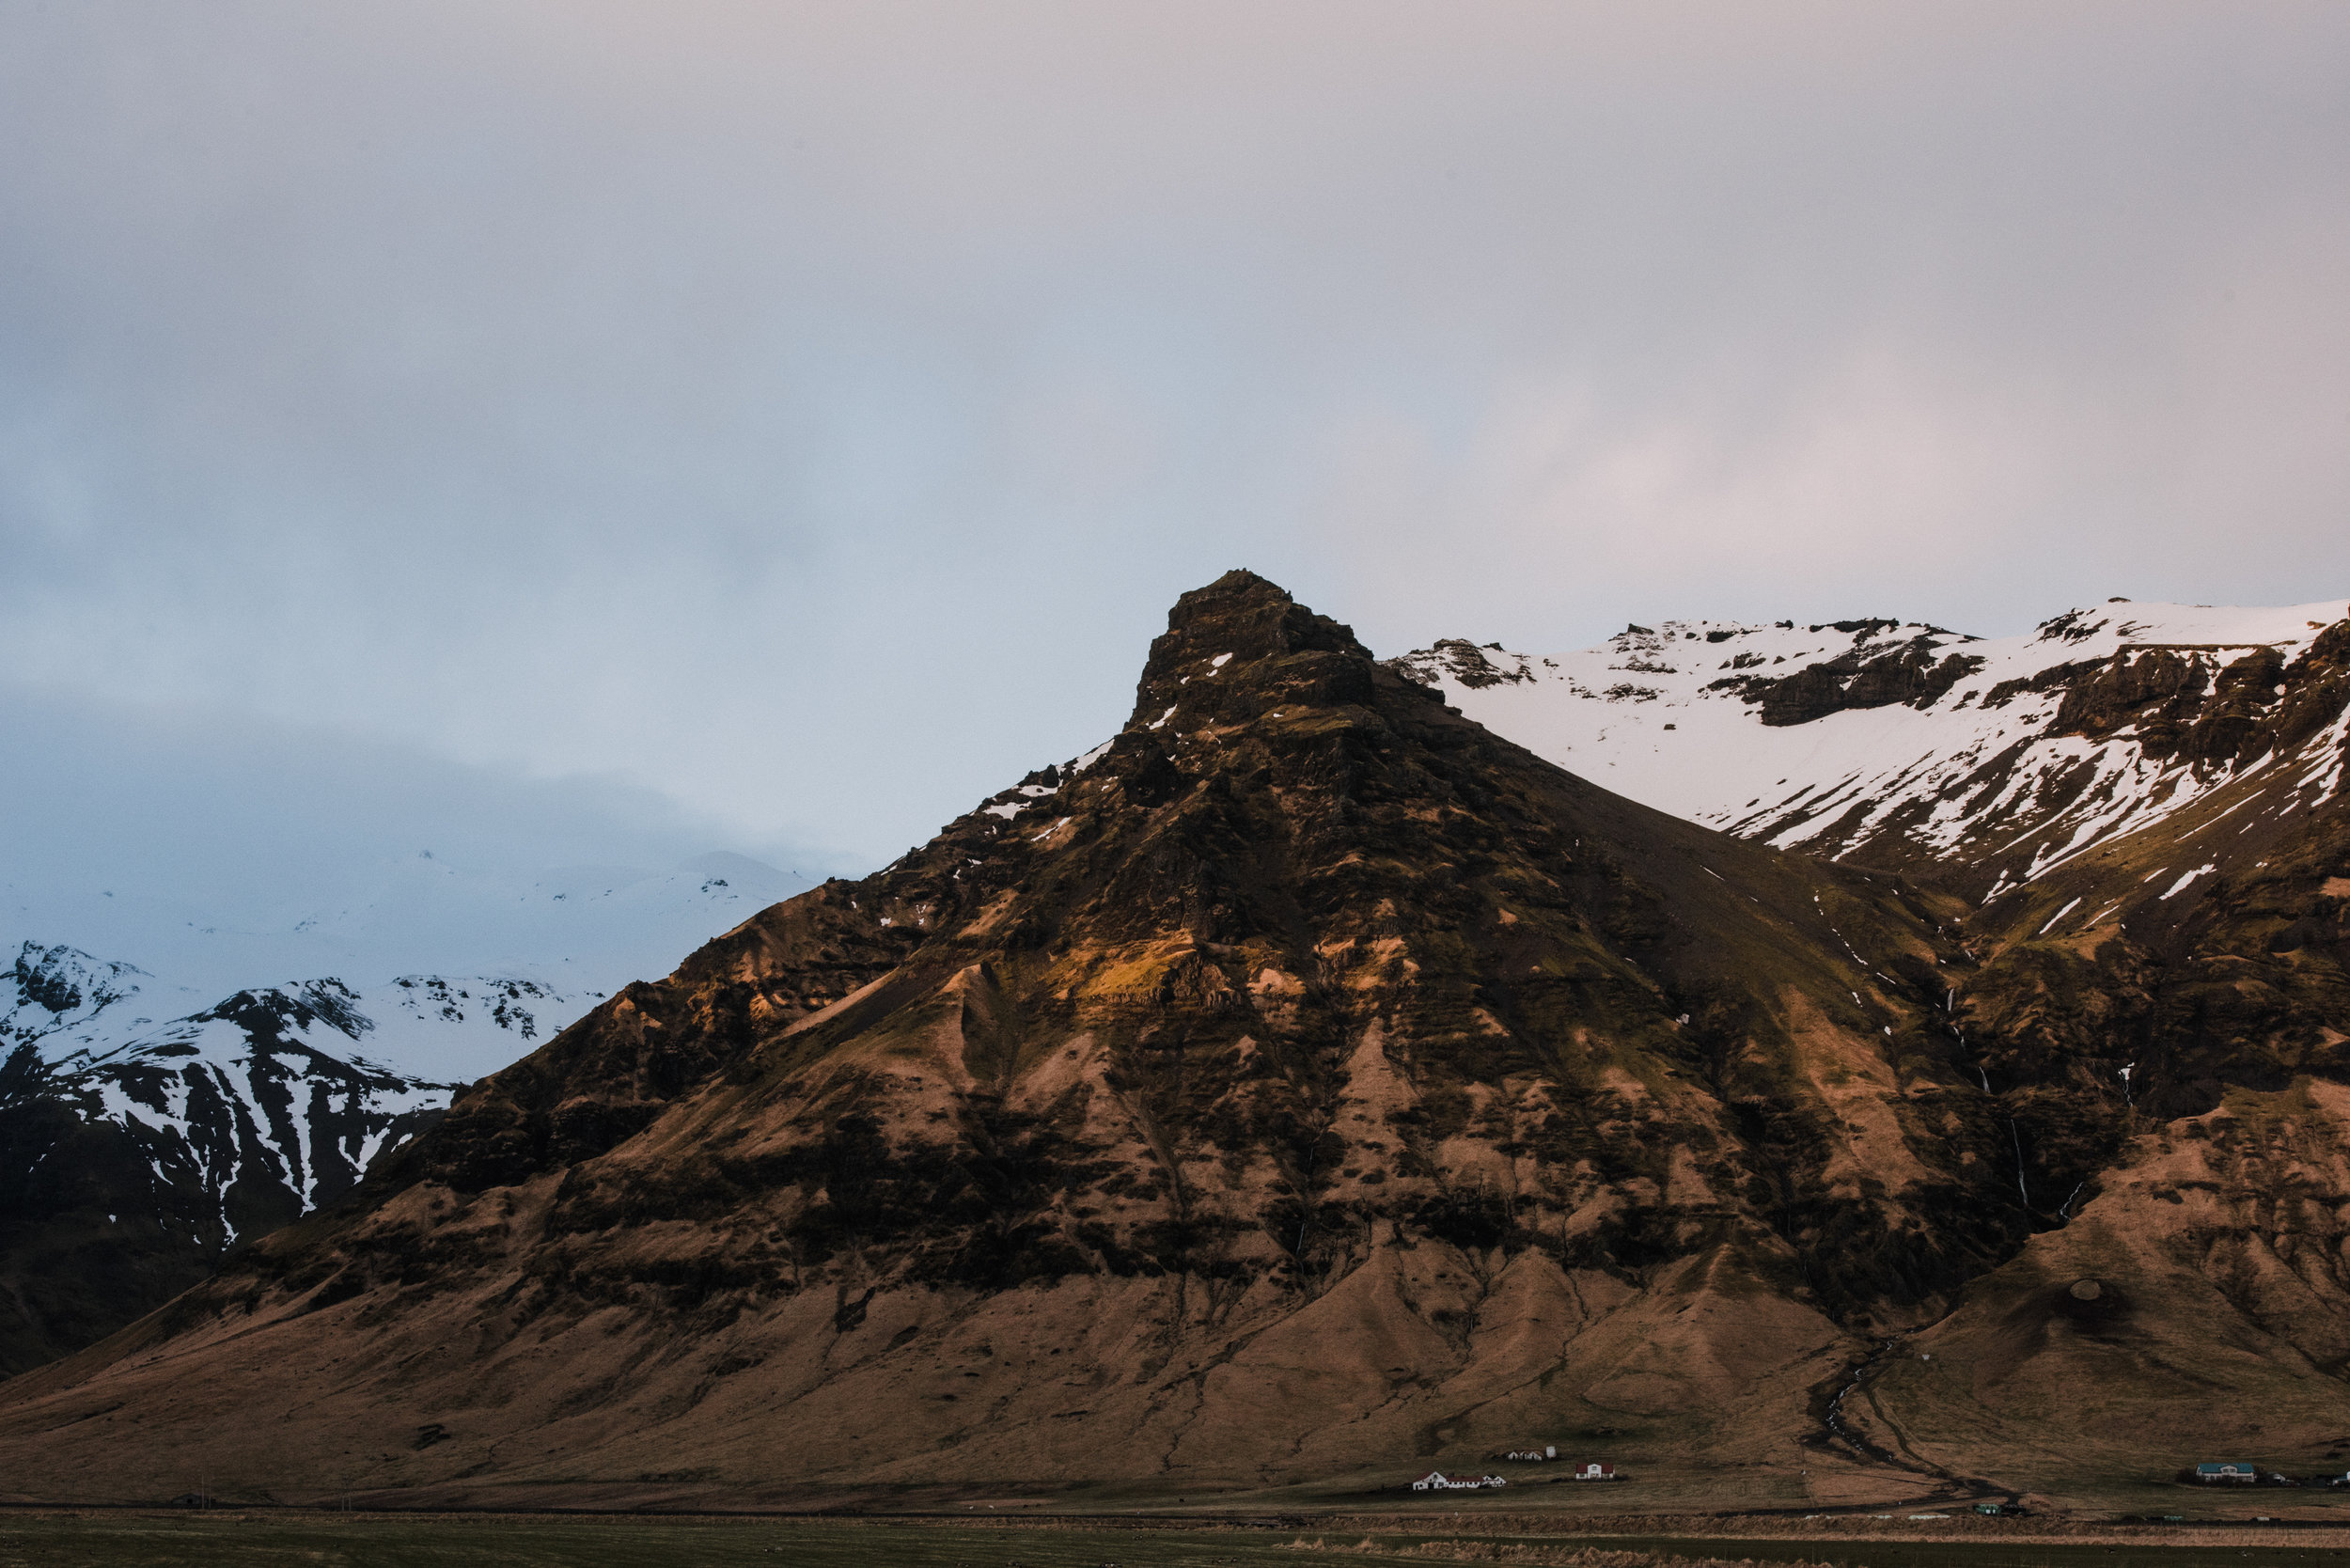 ICELAND_WOMAN_PHOTOGRAPHER_TARASHUPE_OUTDOOR_PHOTOGRAPHY_049.jpg